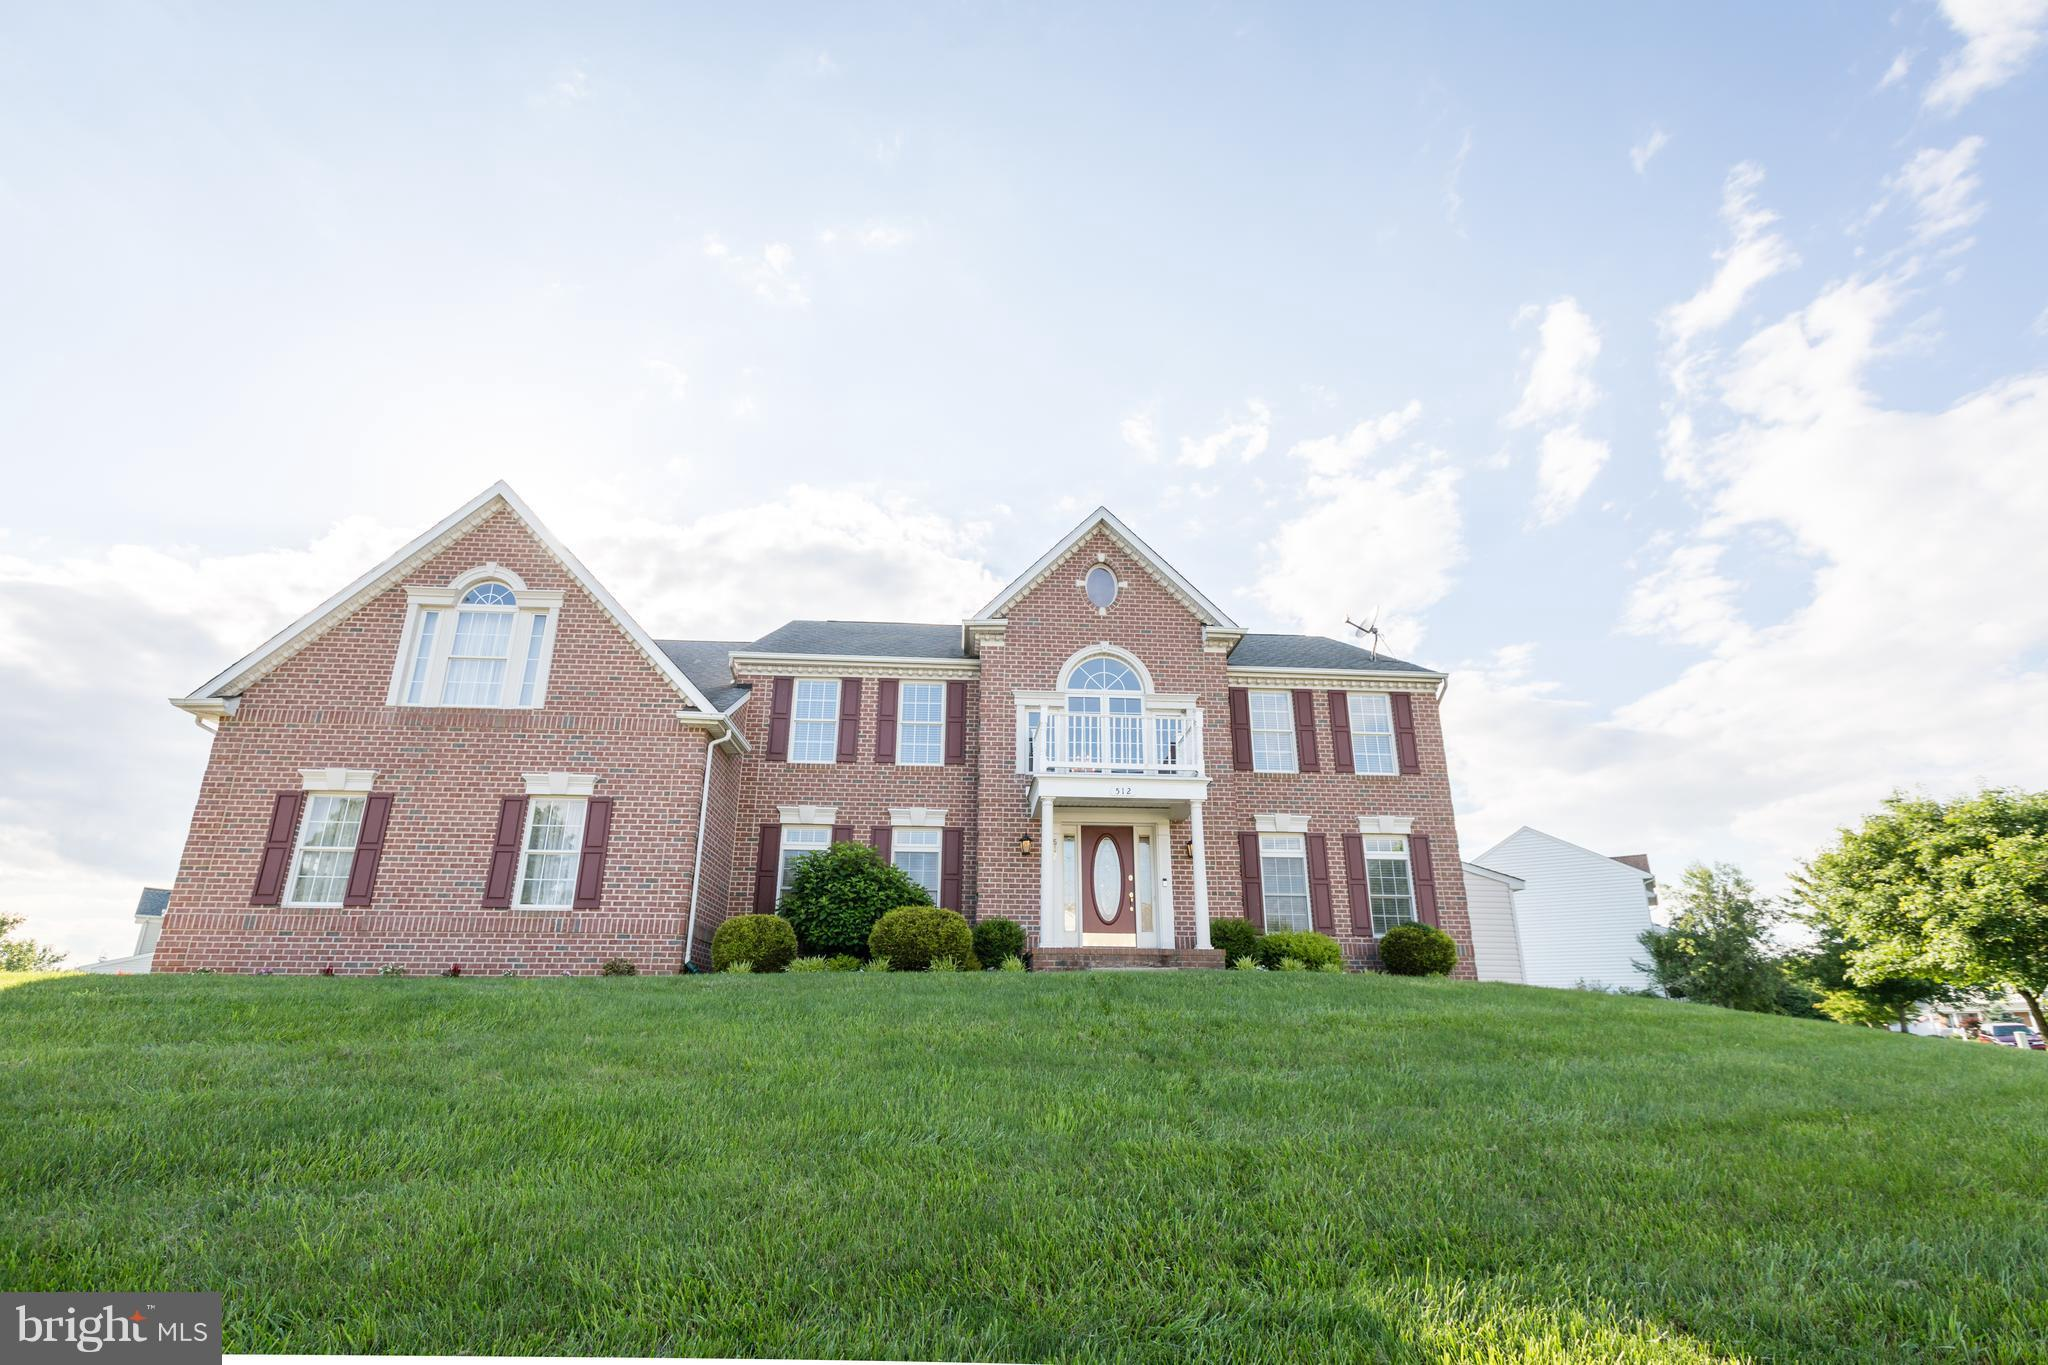 512 CEDAR POINT DRIVE, PERRYVILLE, MD 21903